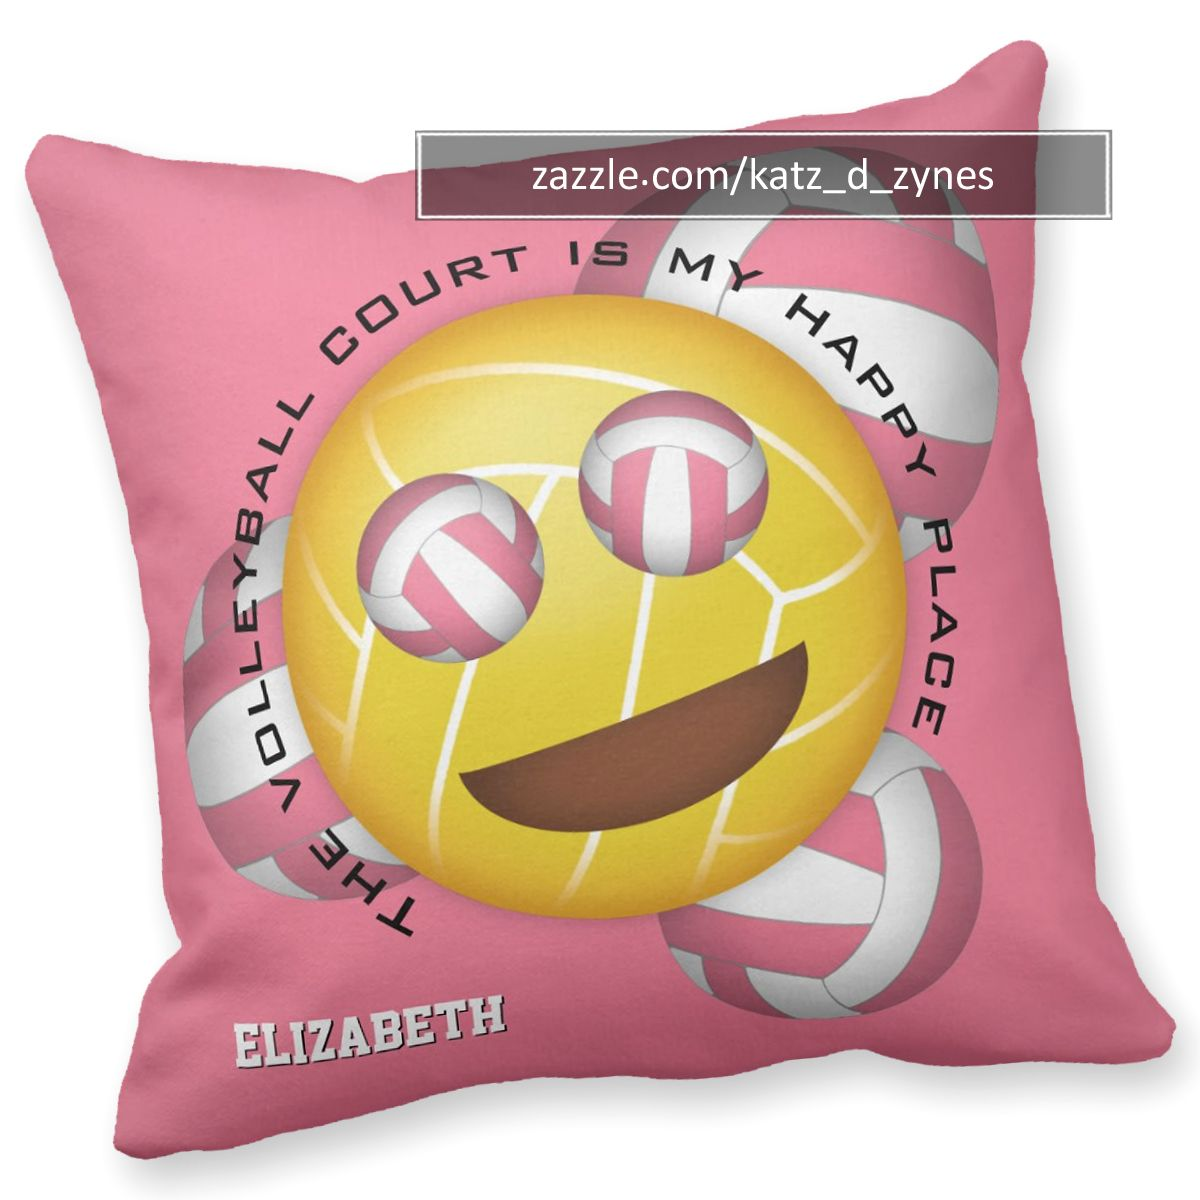 Volleyball Court Is Happy Place Smiling Emoji Throw Pillow Zazzle Com Throw Pillows Emoji Colorful Backgrounds